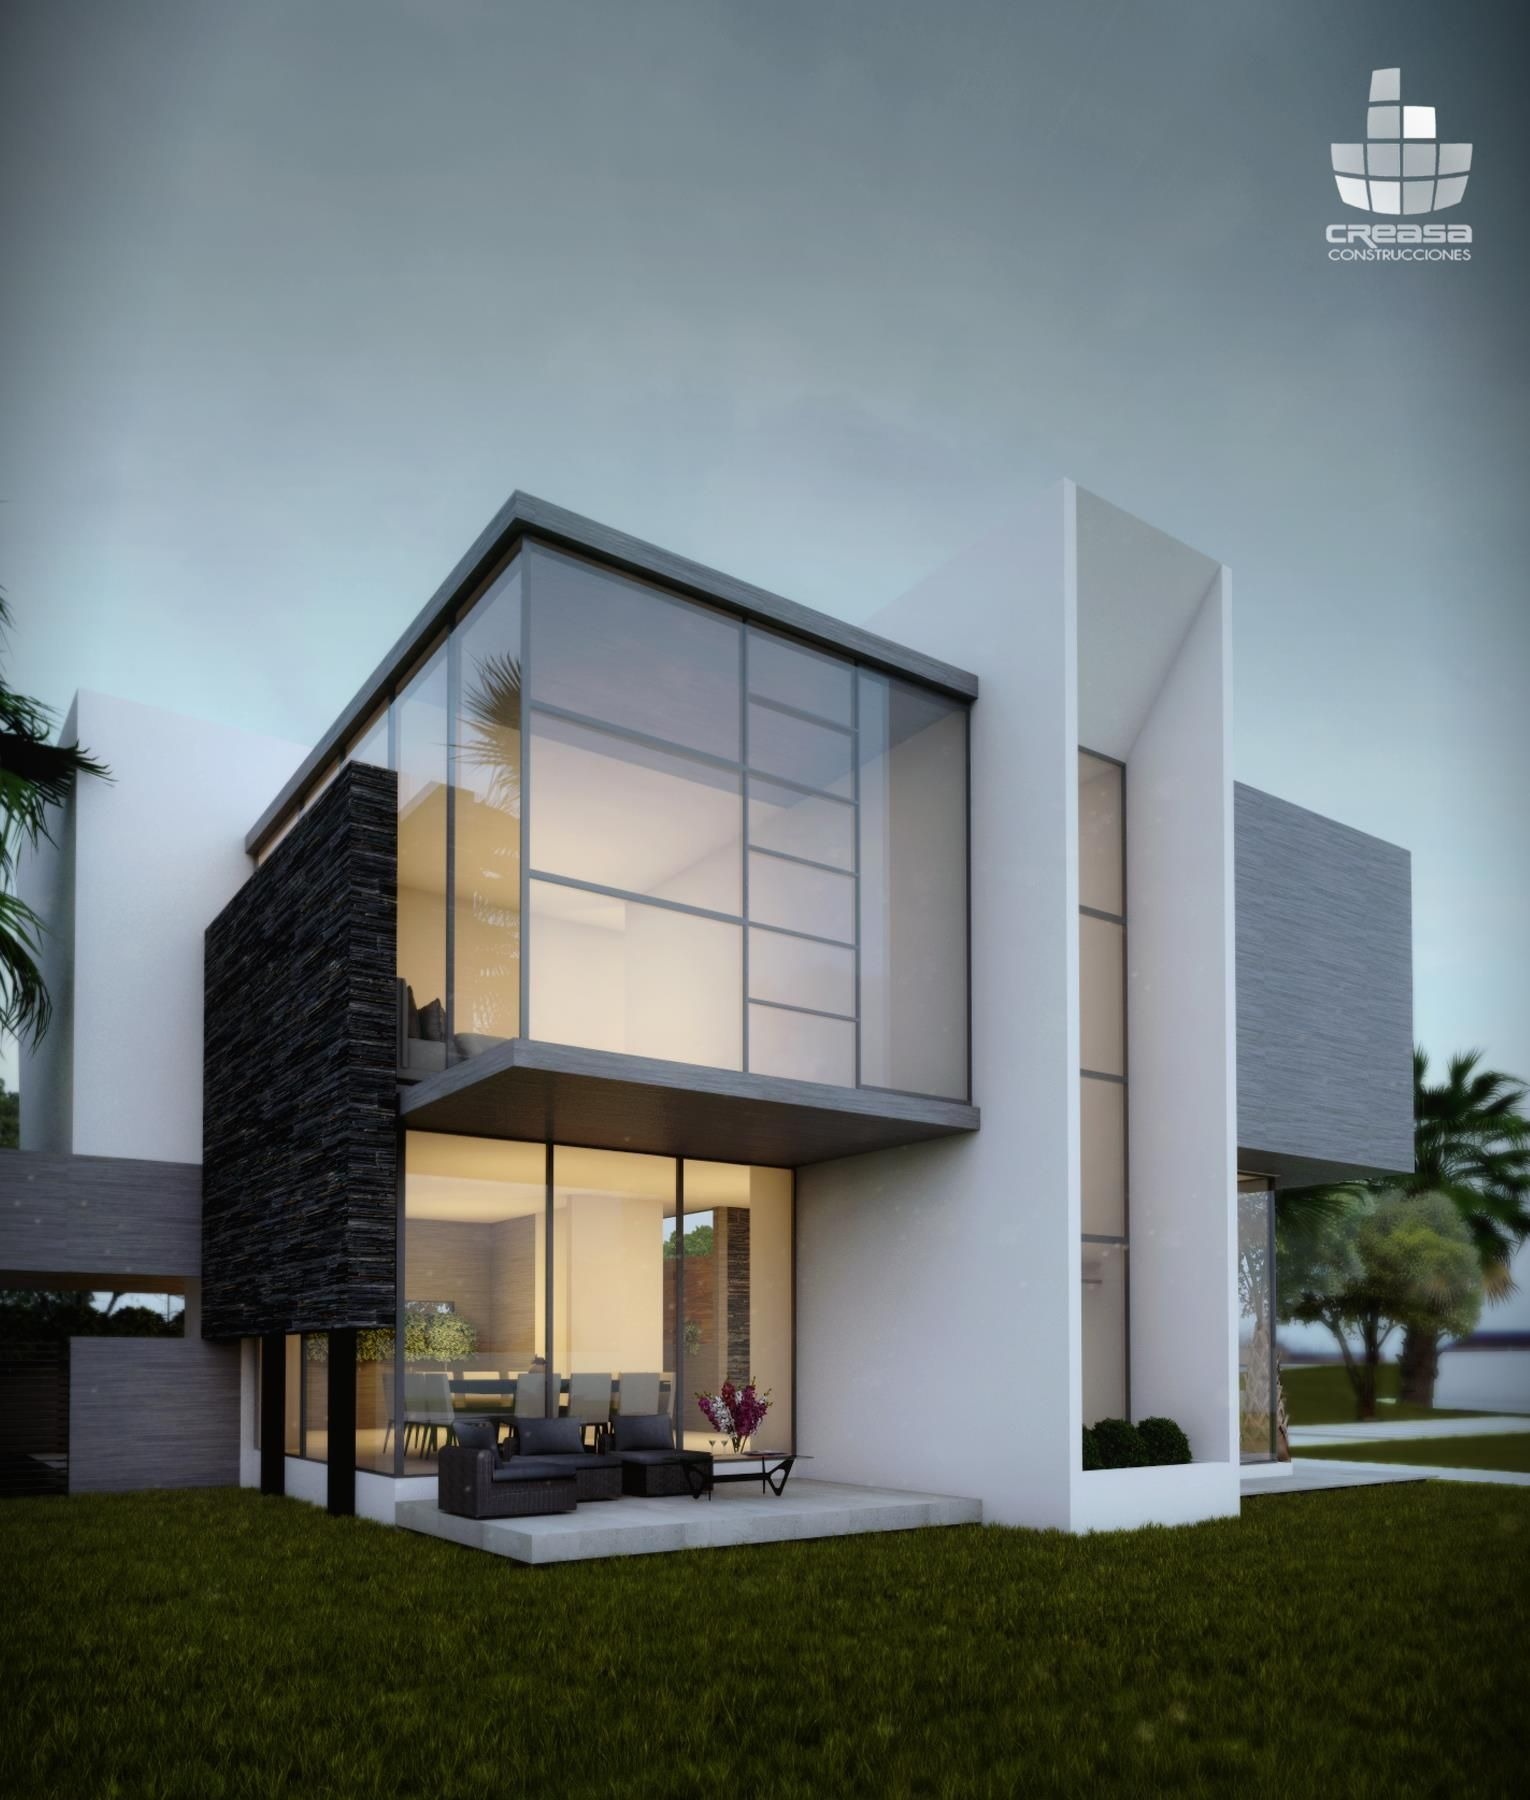 Creasa modern architecture pinterest villas house for Modern architecture design house